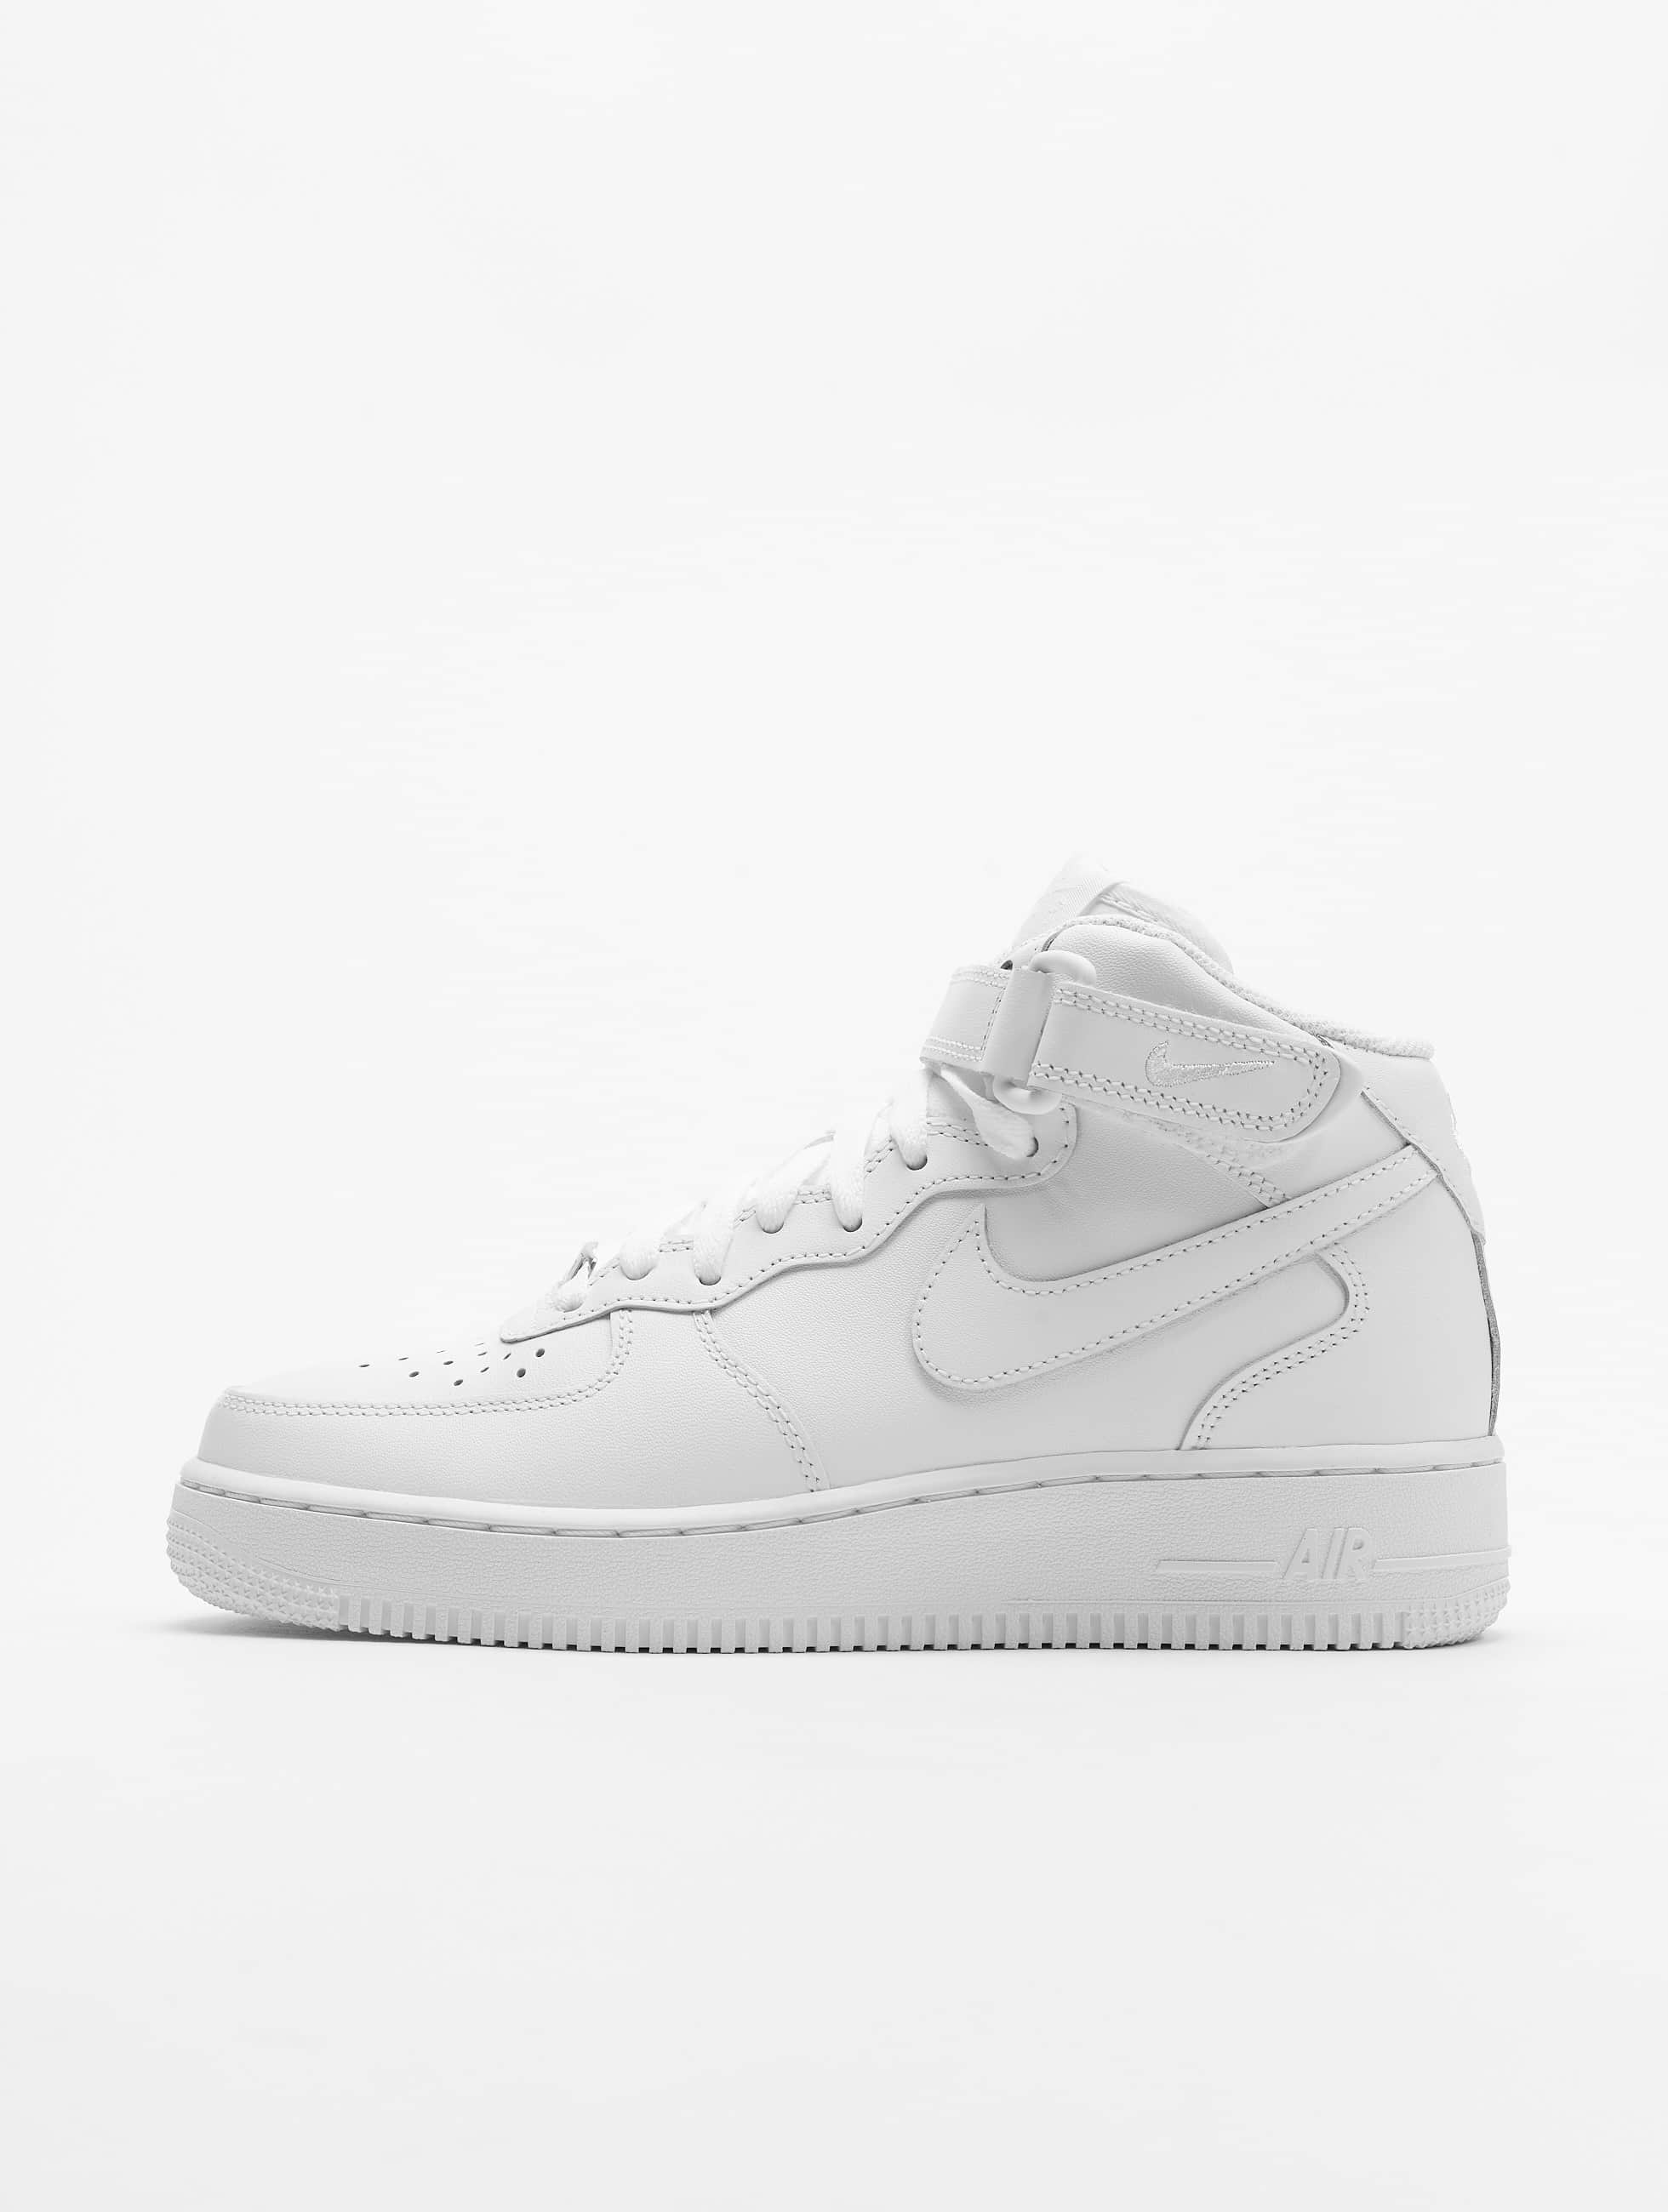 Sneaker Air Force 1 Mid '07 Basketball Shoes in weiß